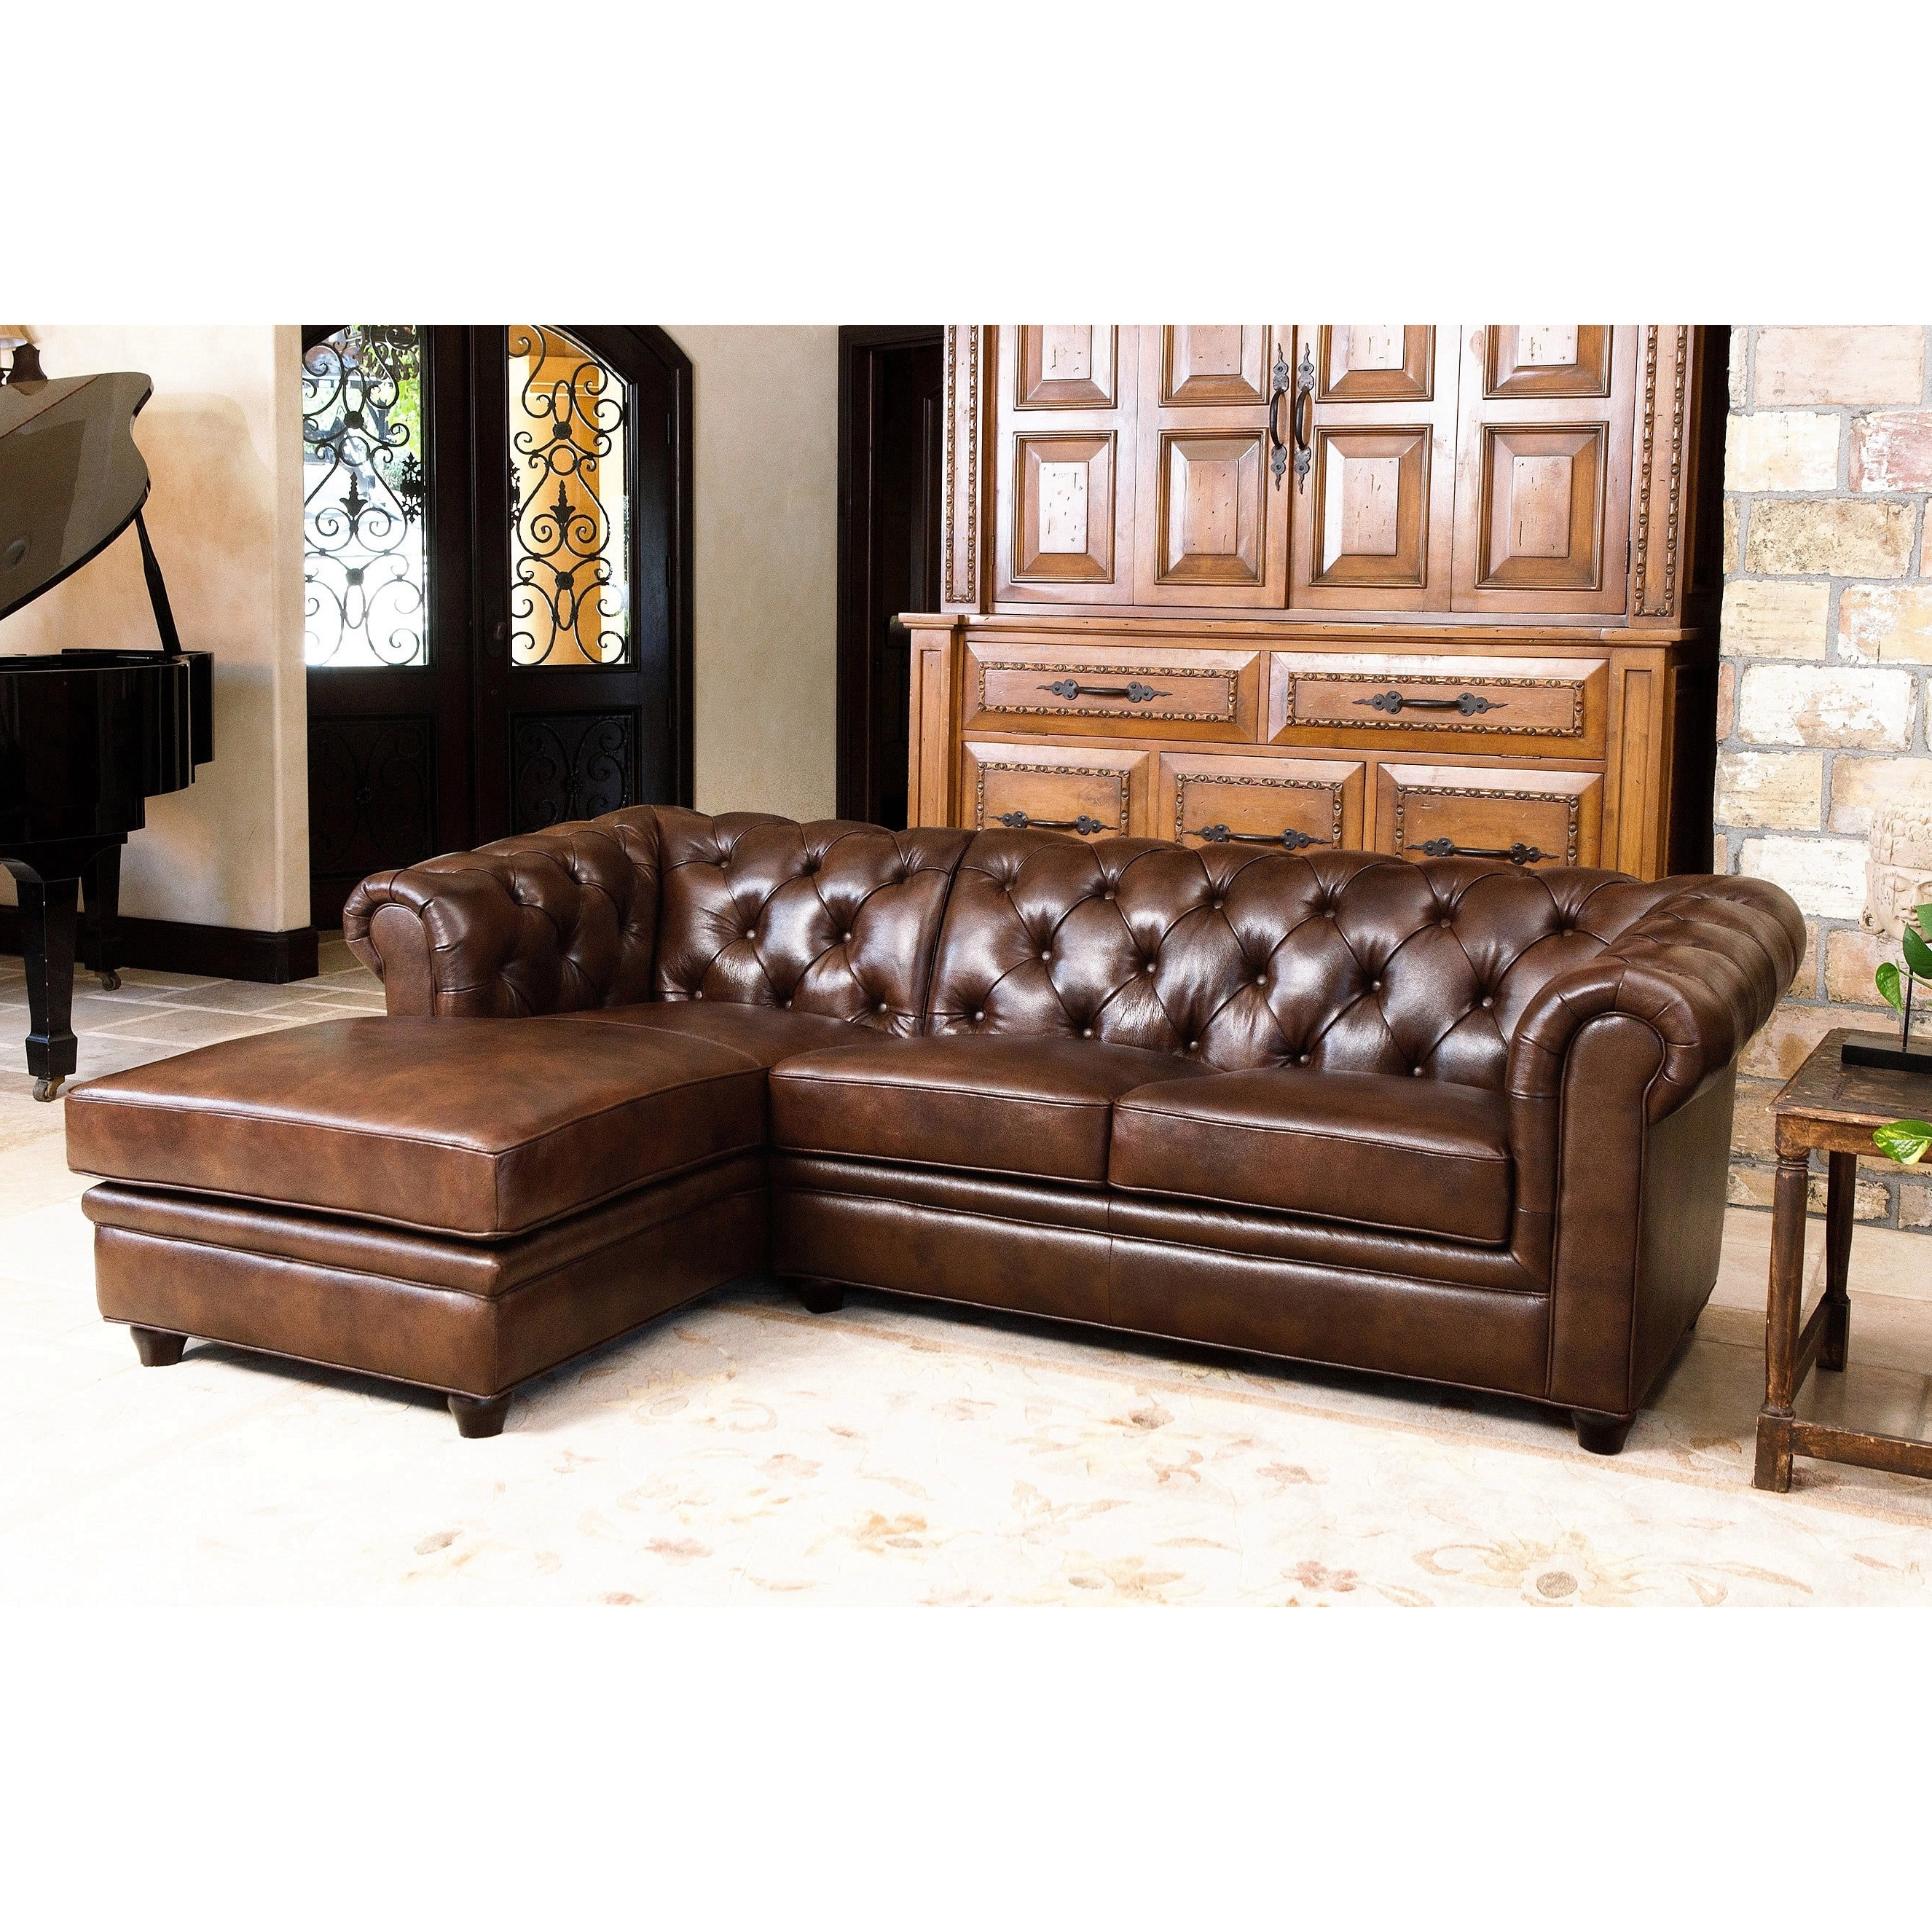 Trendy Abbyson Tuscan Tufted Top Grain Leather Chaise Sectional – Free Pertaining To Leather Chaise Sectionals (View 14 of 15)